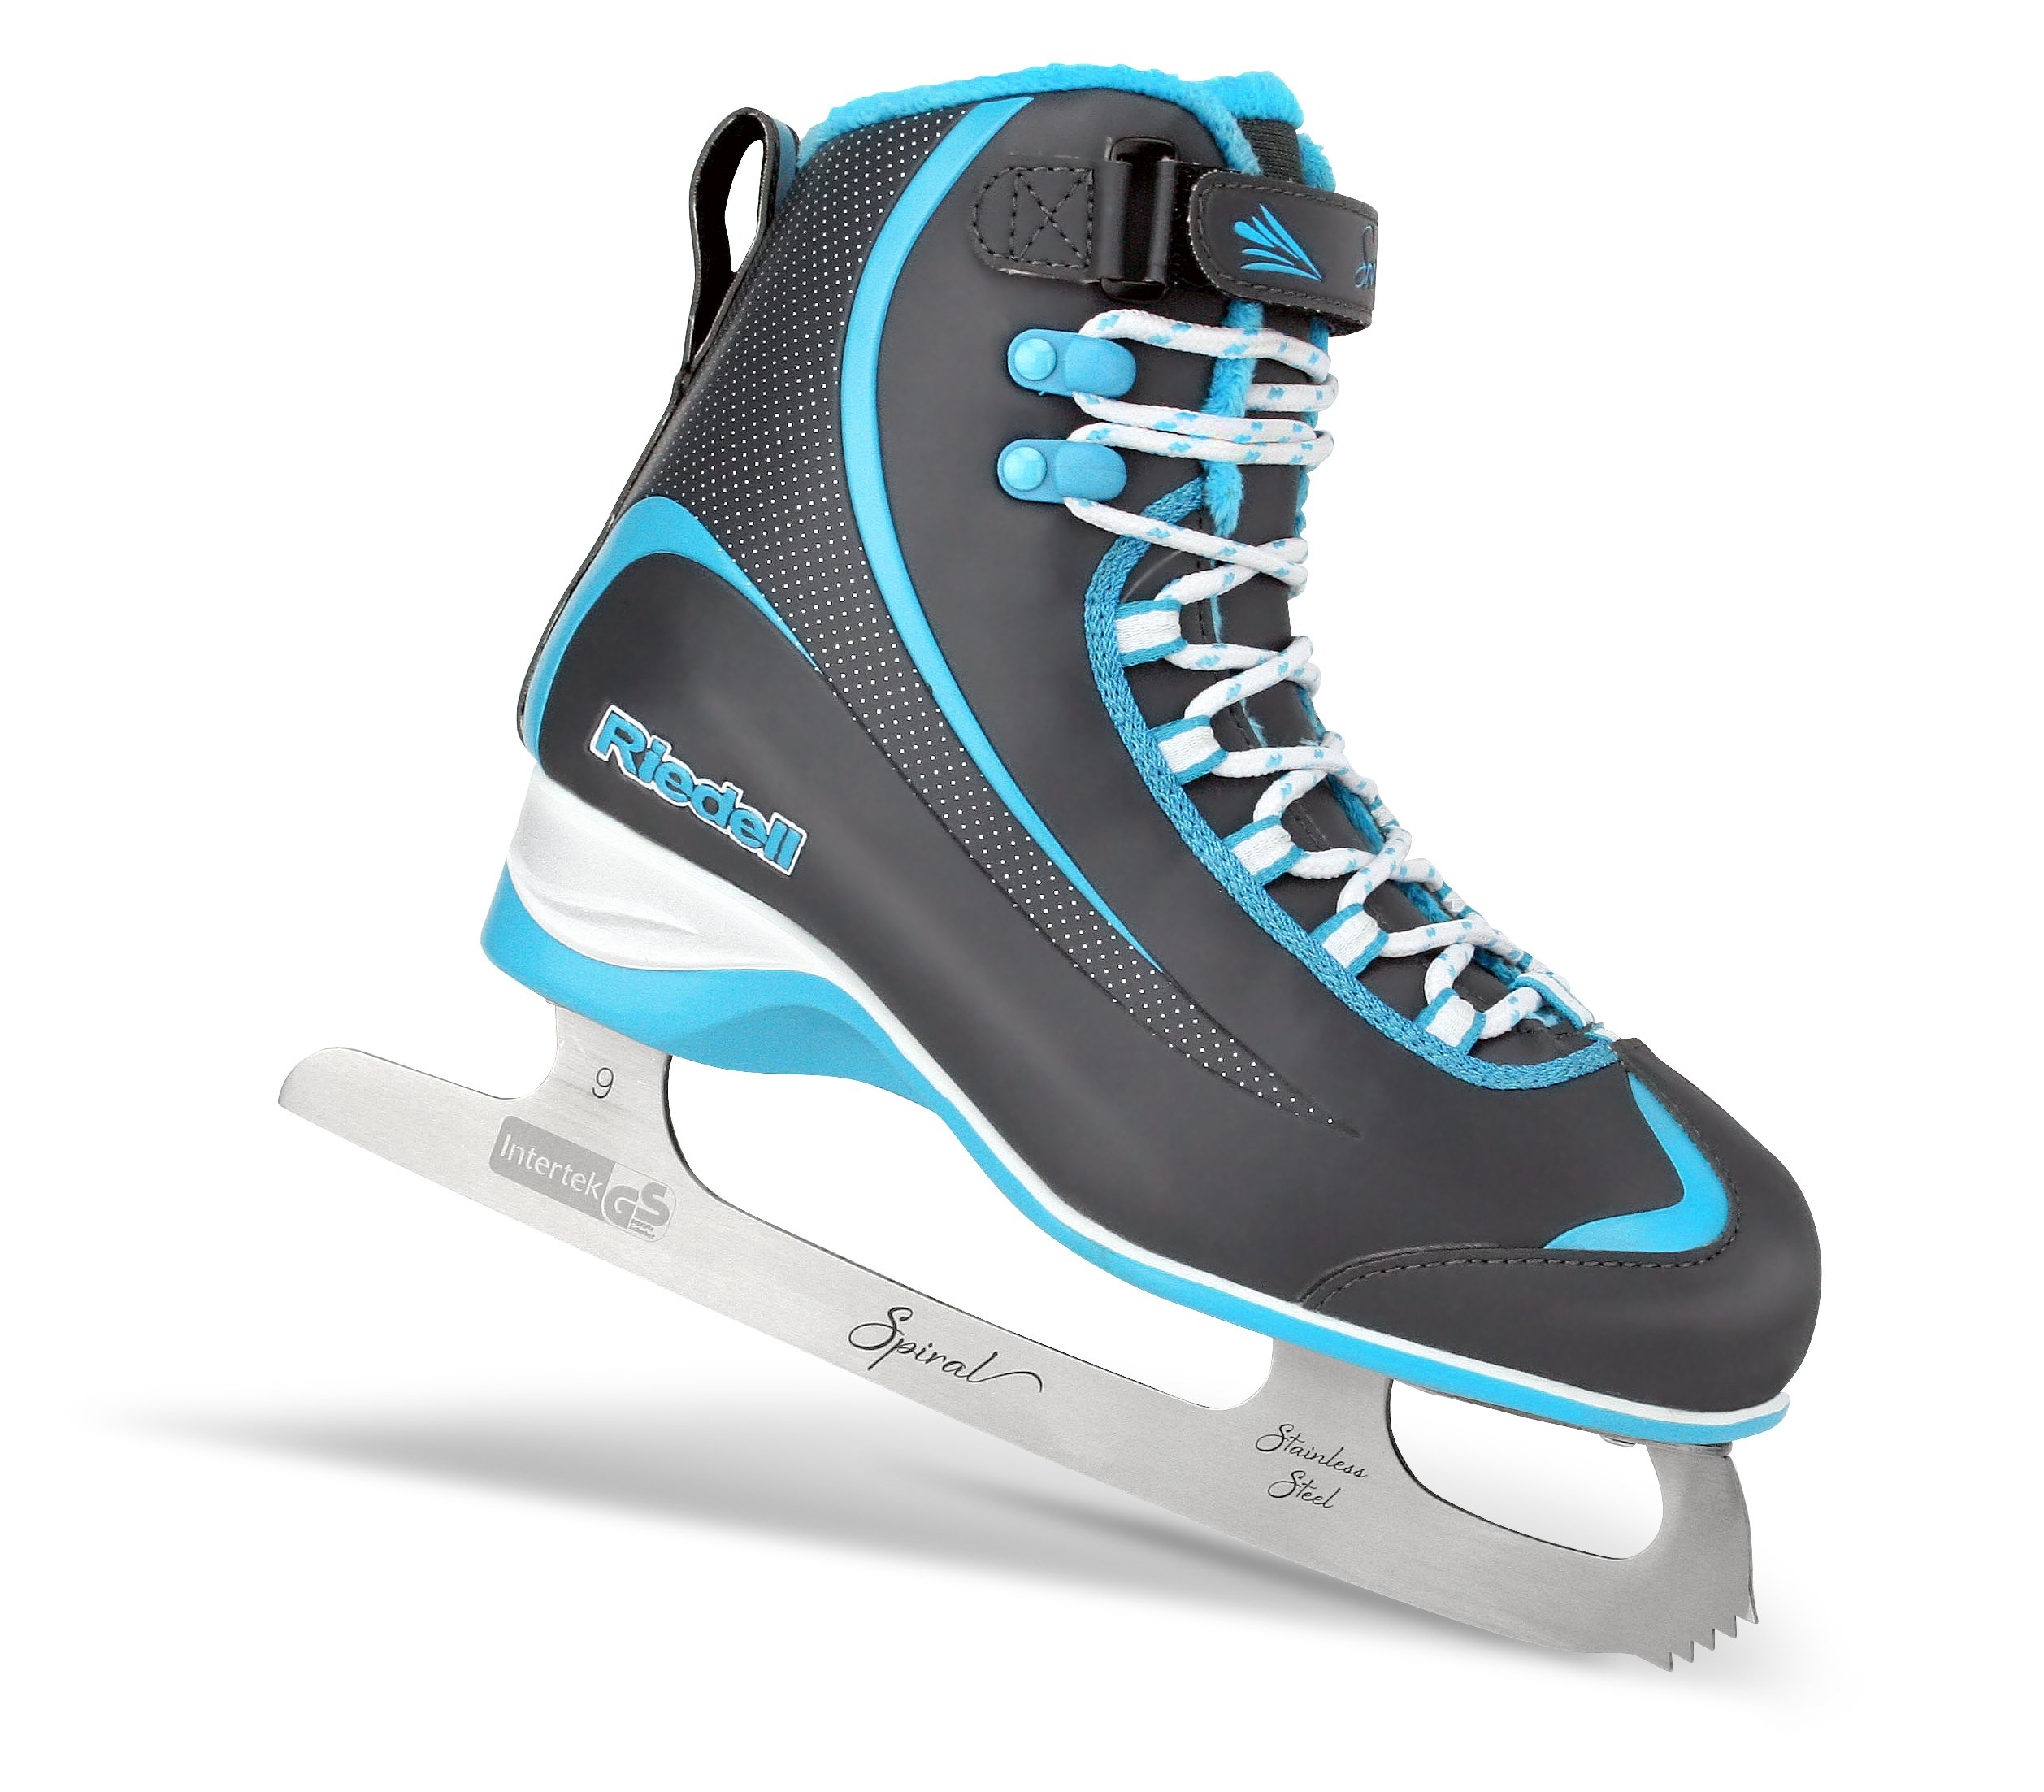 Riedell 615 Soar / Kids Beginner/Soft Figure Ice Skates / Color: Gray with Blue / Size: 1